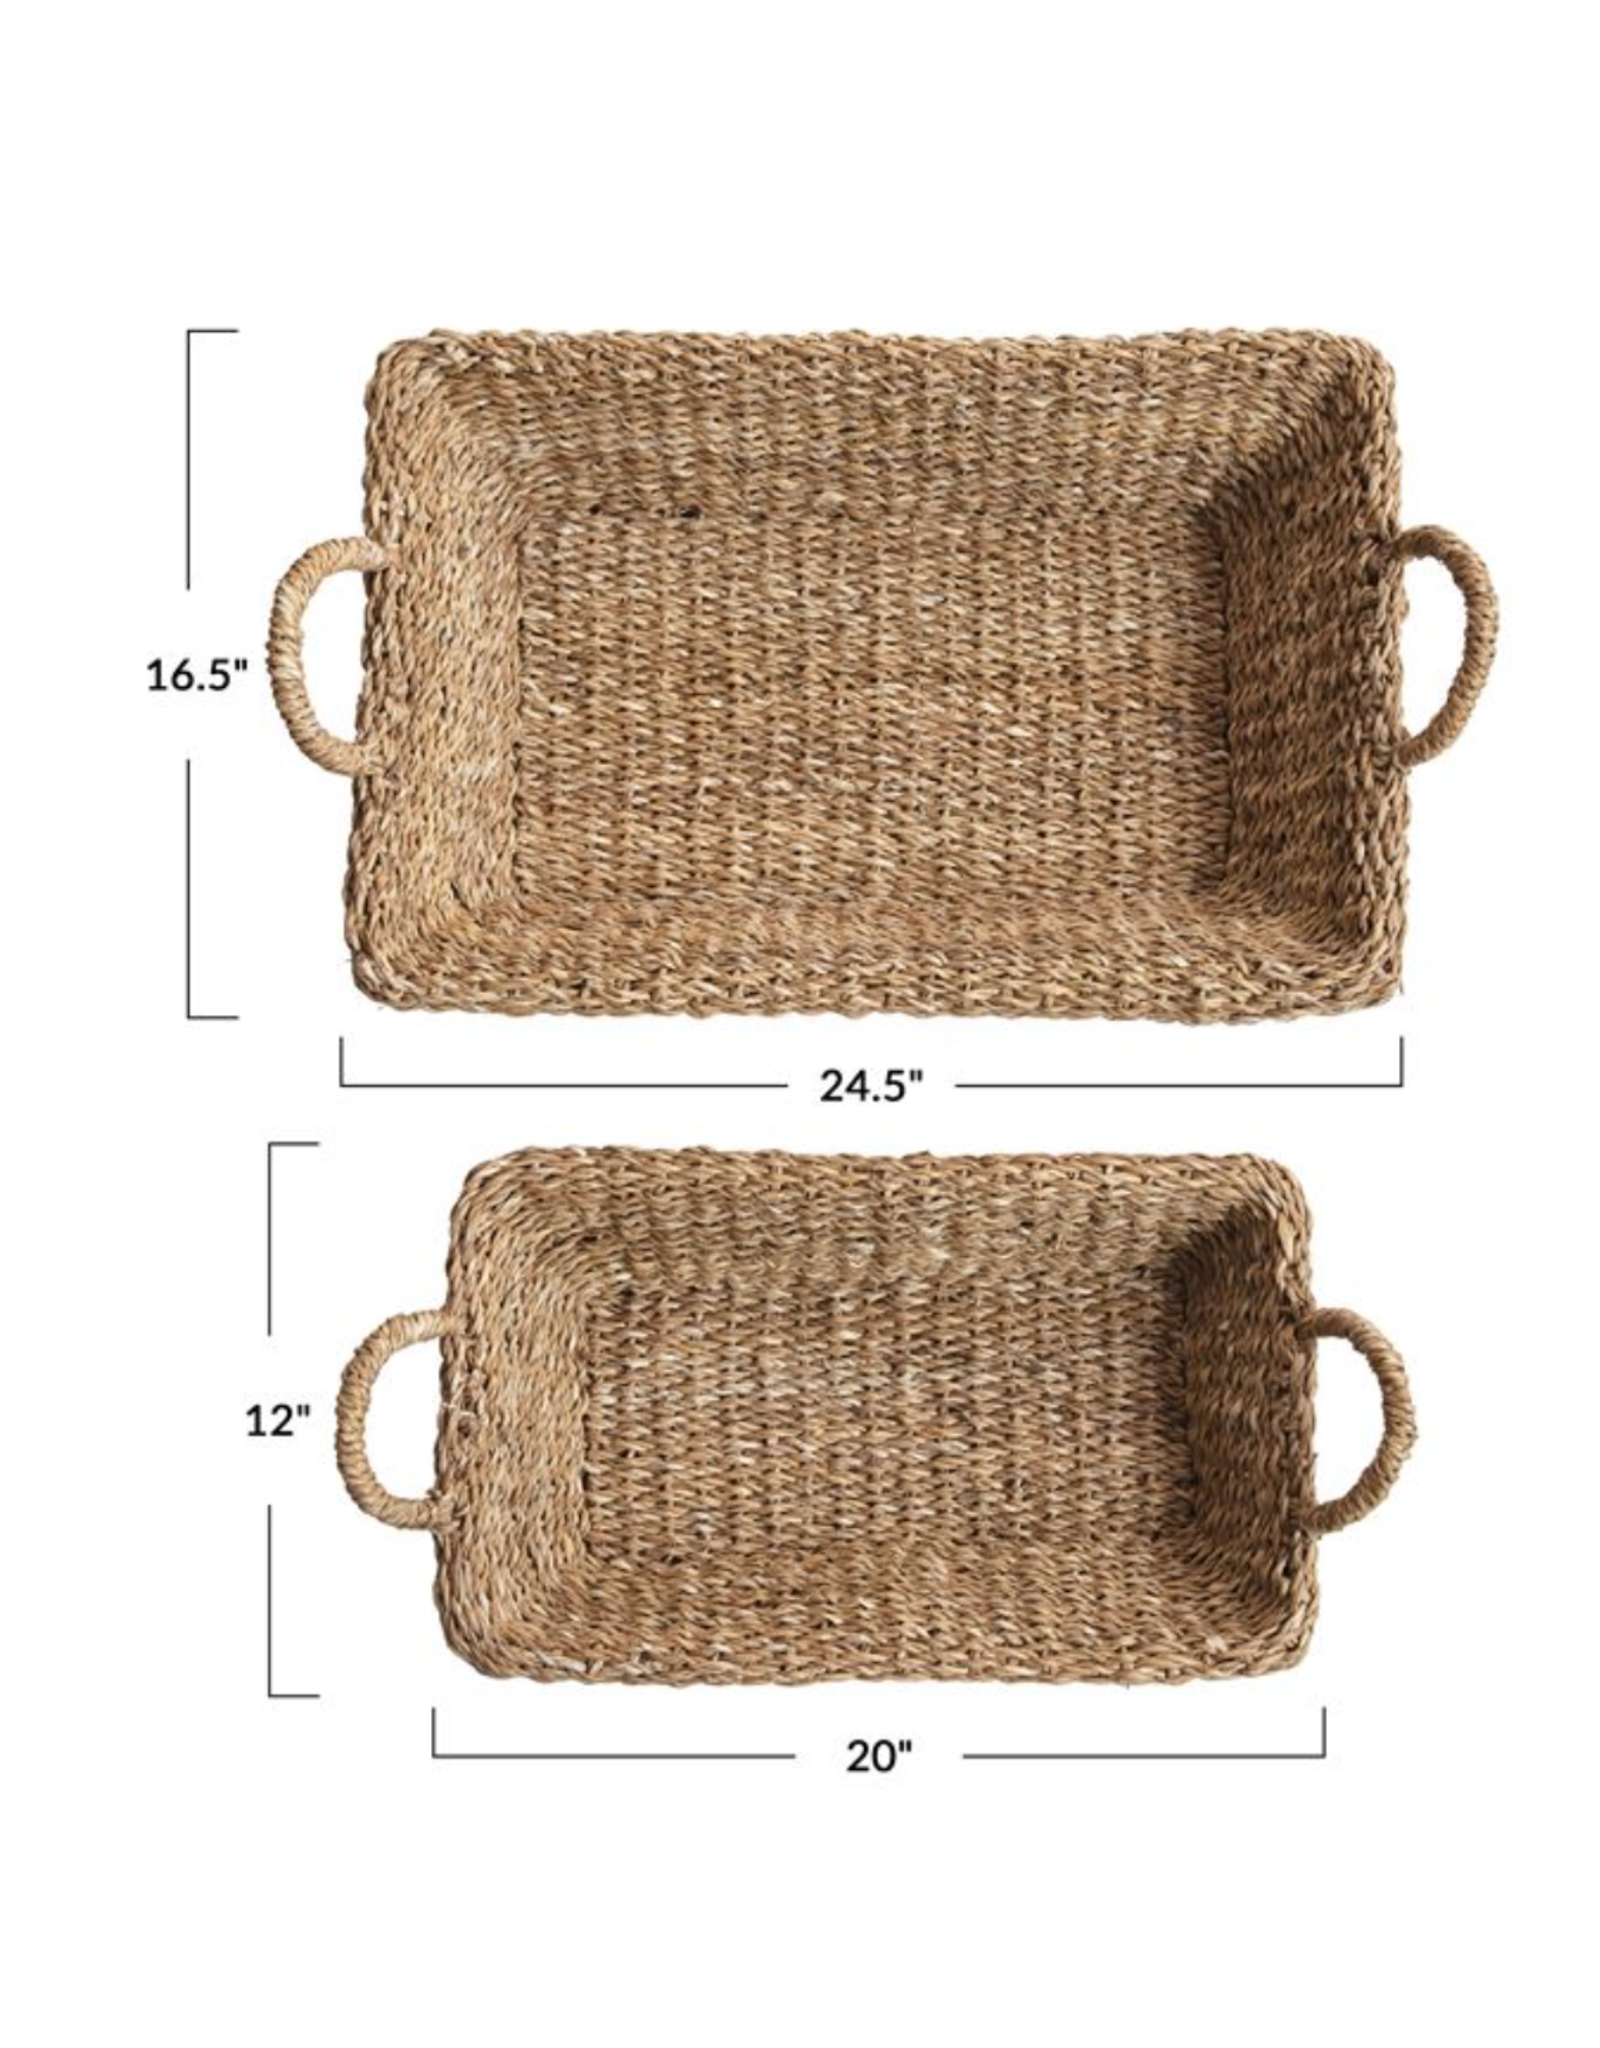 Bloomingville Hand Woven Seagrass Tray with Handles, Small